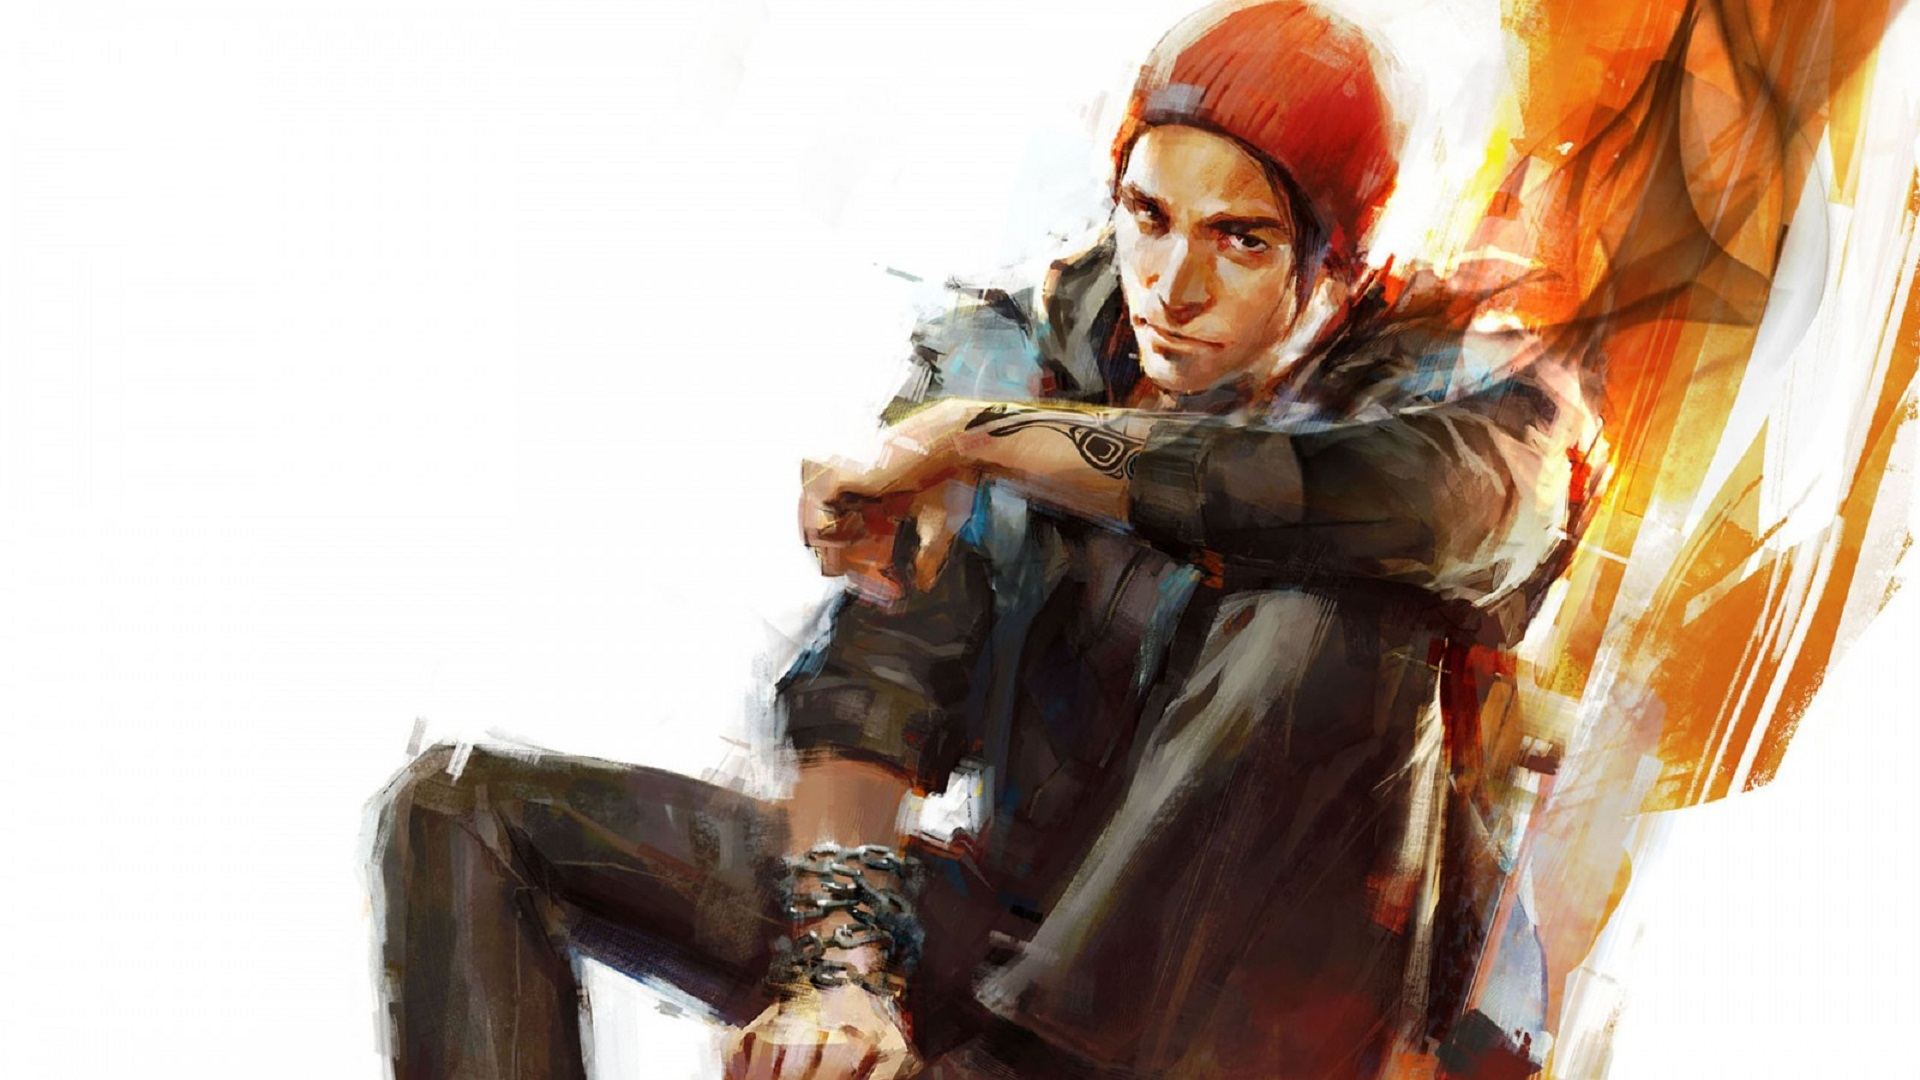 Delsin-Rowe-Infamous-Second-Son-Game-HD-Wallpaper.jpg